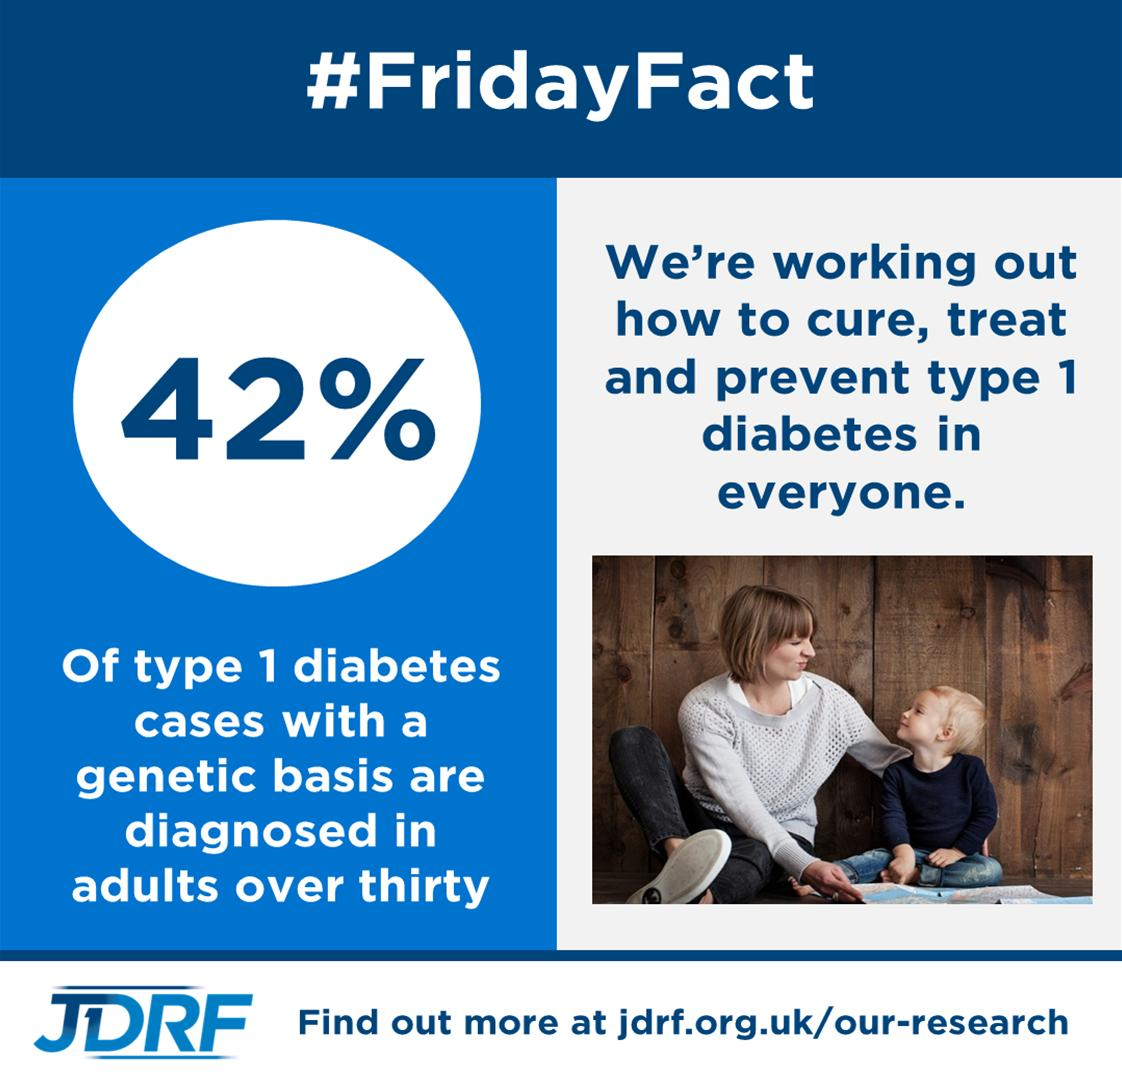 test Twitter Media - We're determined to create a world without #type1diabetes. Until that day, we'll continue to fund world-leading research, speak out and give support to everyone with #type1 #diabetes at every stage of their lives. https://t.co/PVaaVcPYOJ https://t.co/GN4PXZzZcU